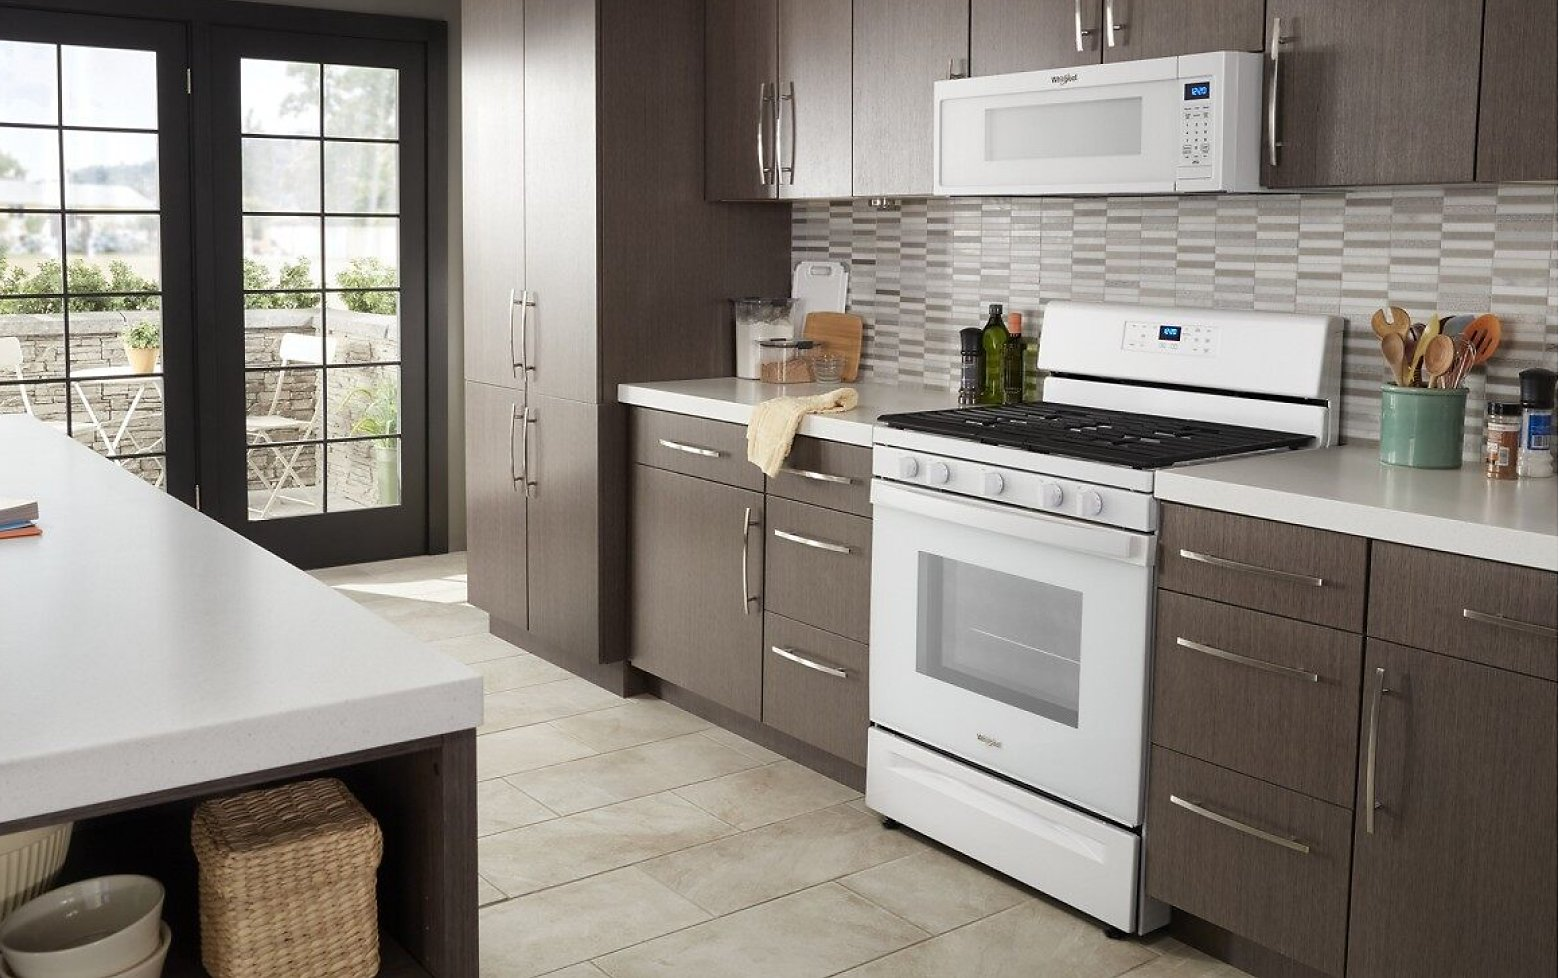 Kitchen featuring Whirlpool® range and microwave in white